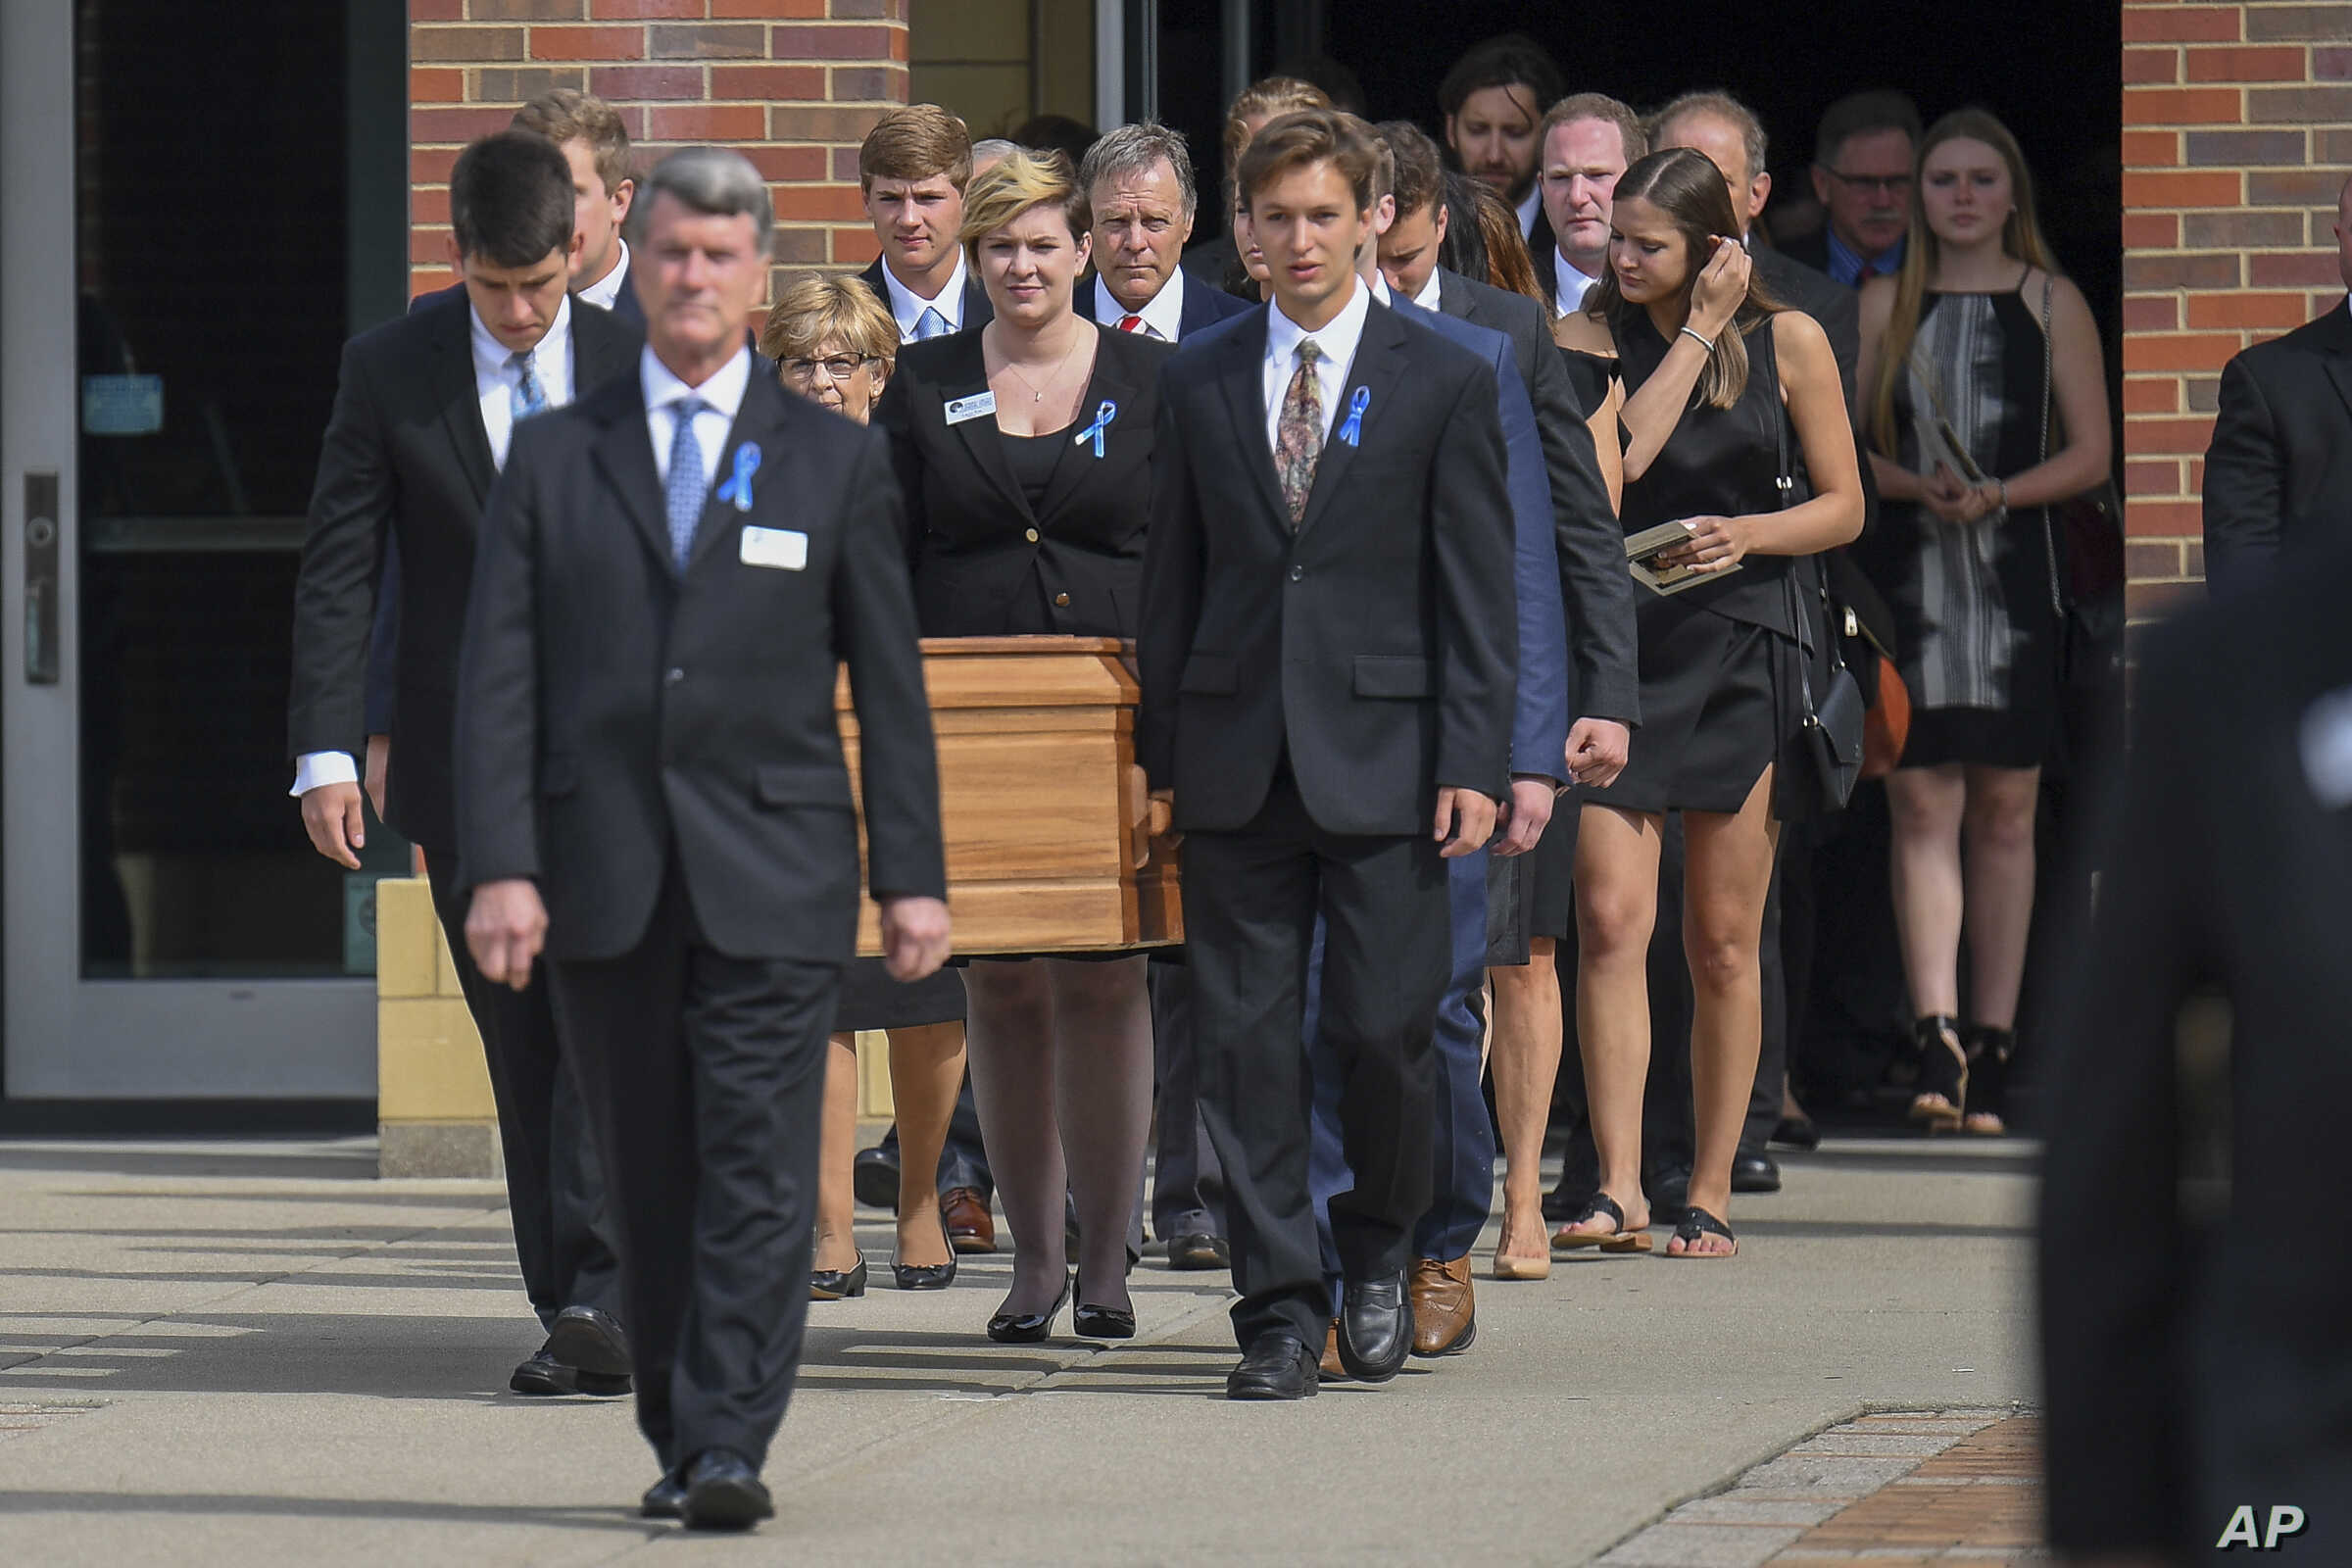 The casket of Otto Warmbier is carried from Wyoming High School after his funeral, June 22, 2017.